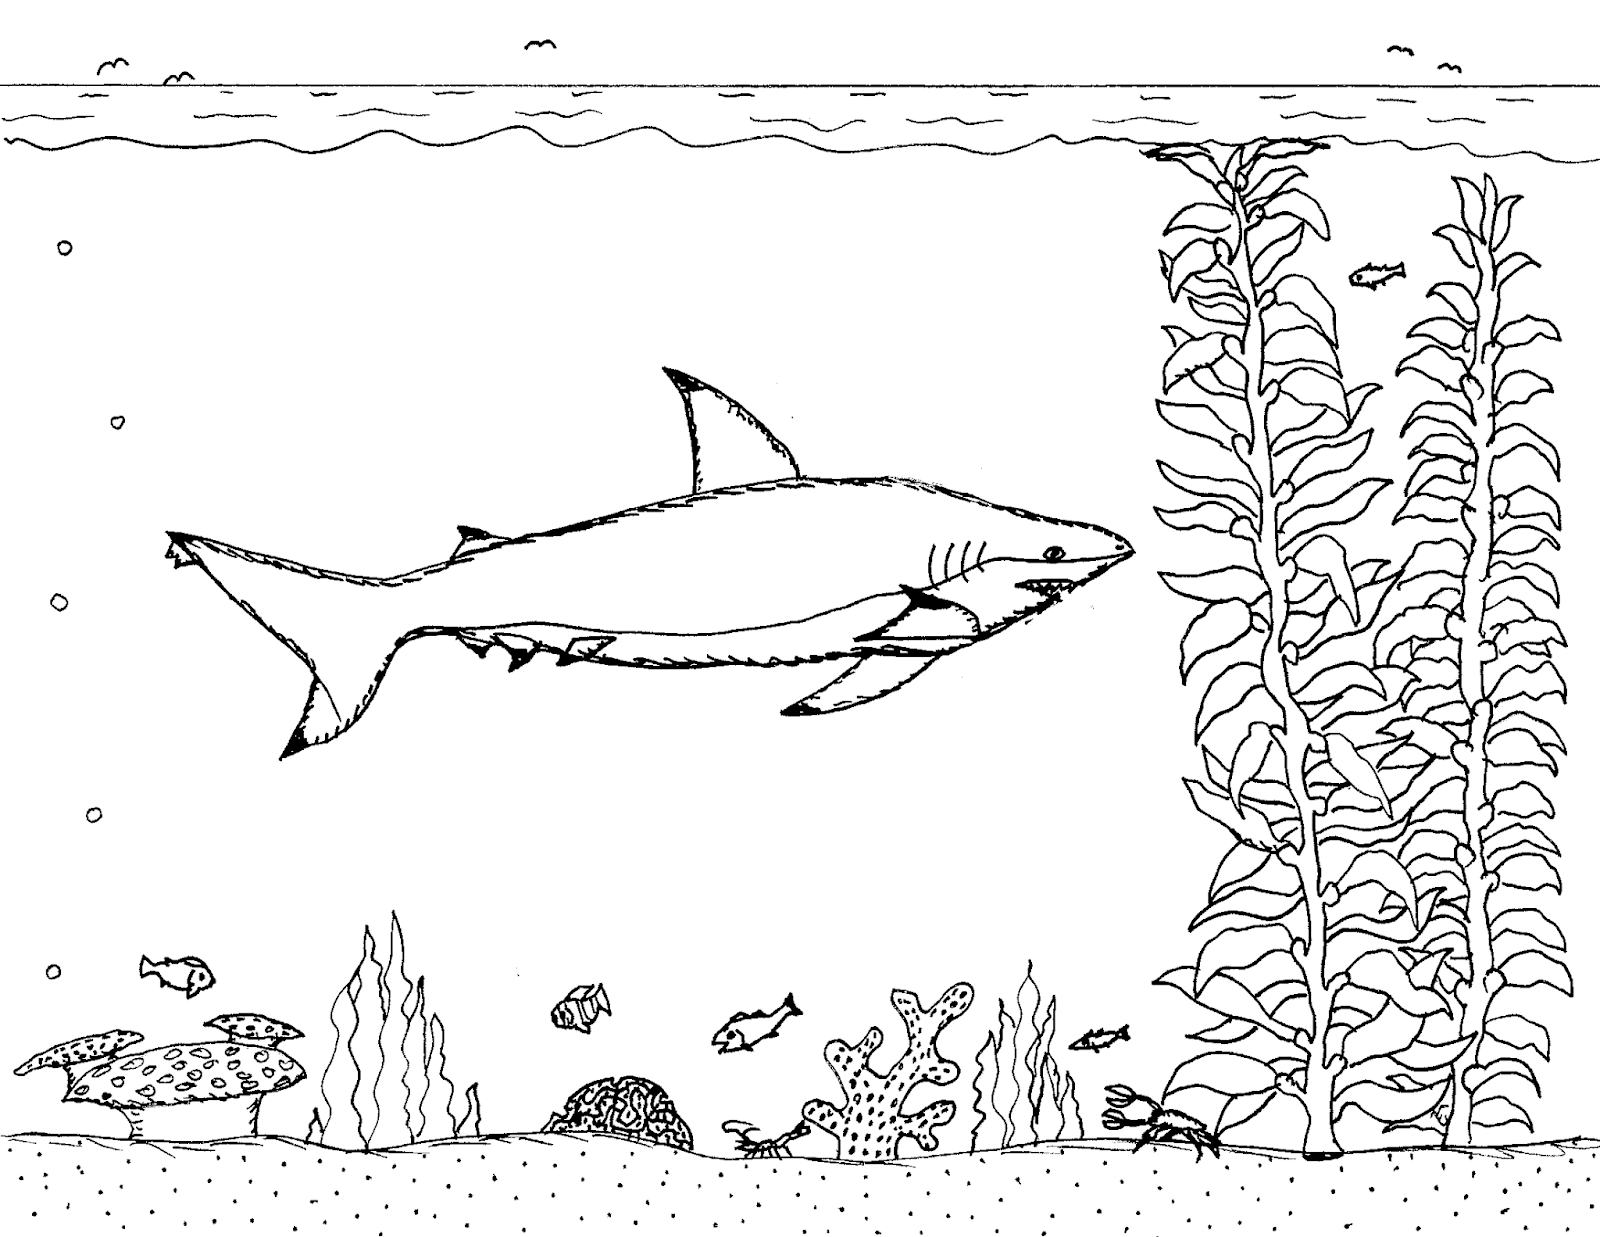 Robin's Great Coloring Pages: Blacktip Reef Shark